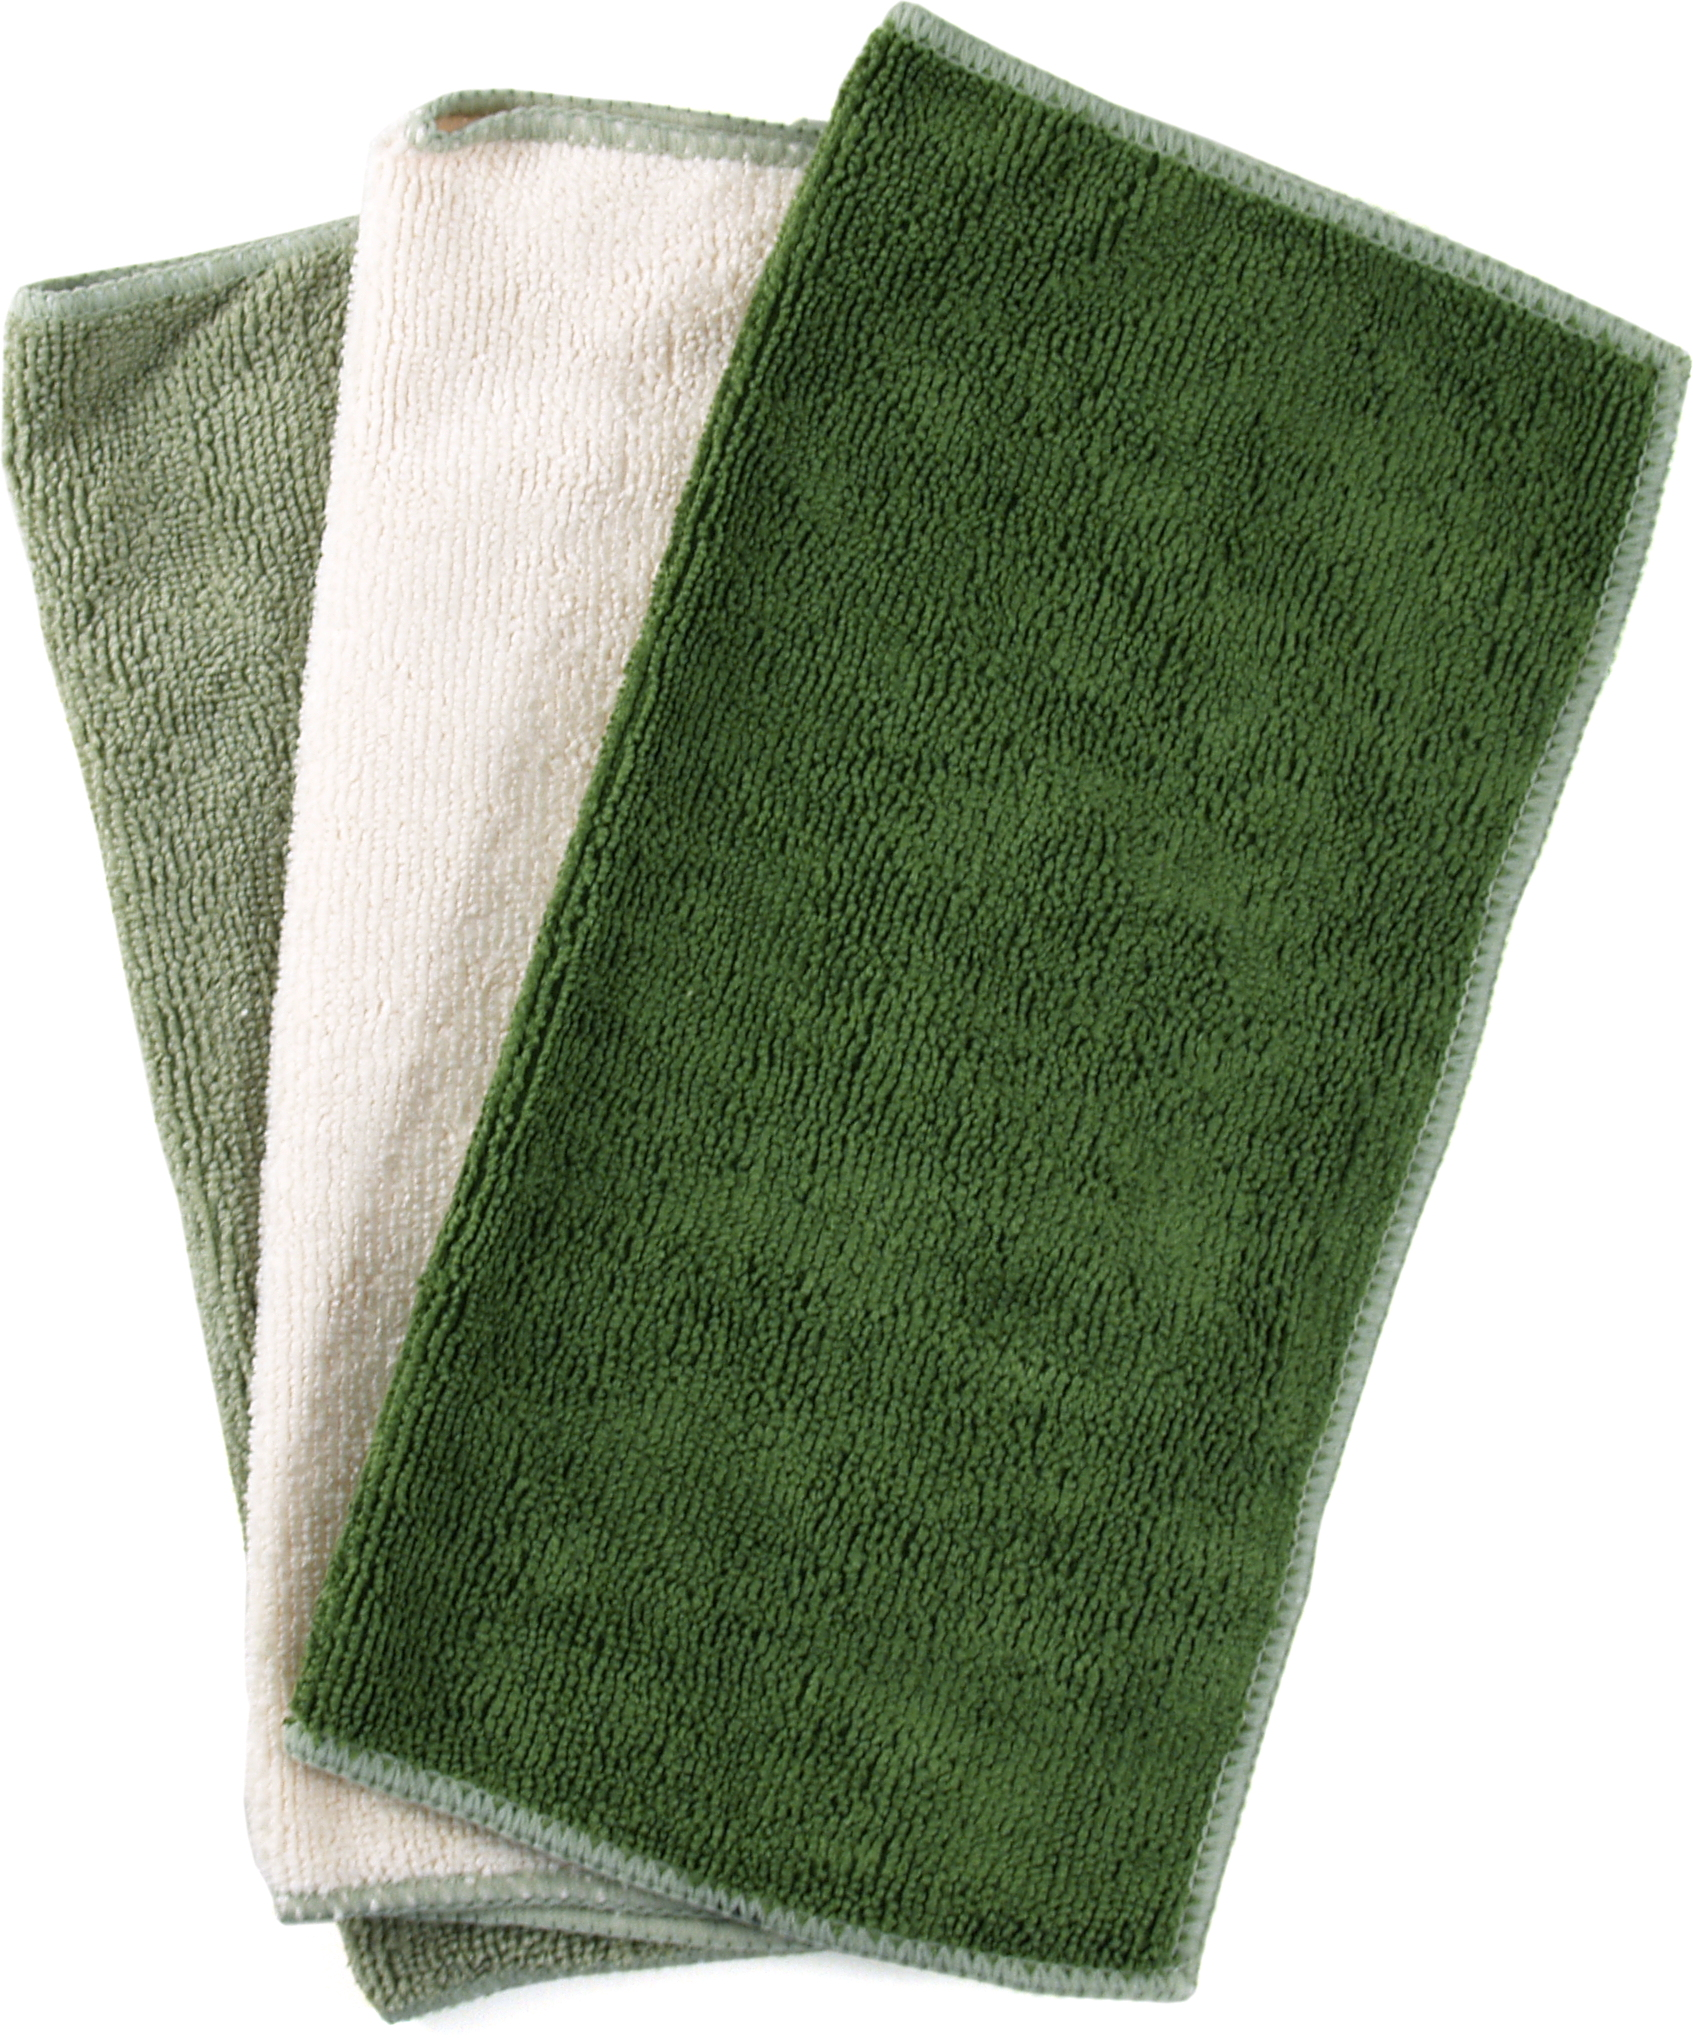 Green and Cream Microfiber Cleaning Cloth, Set of 10